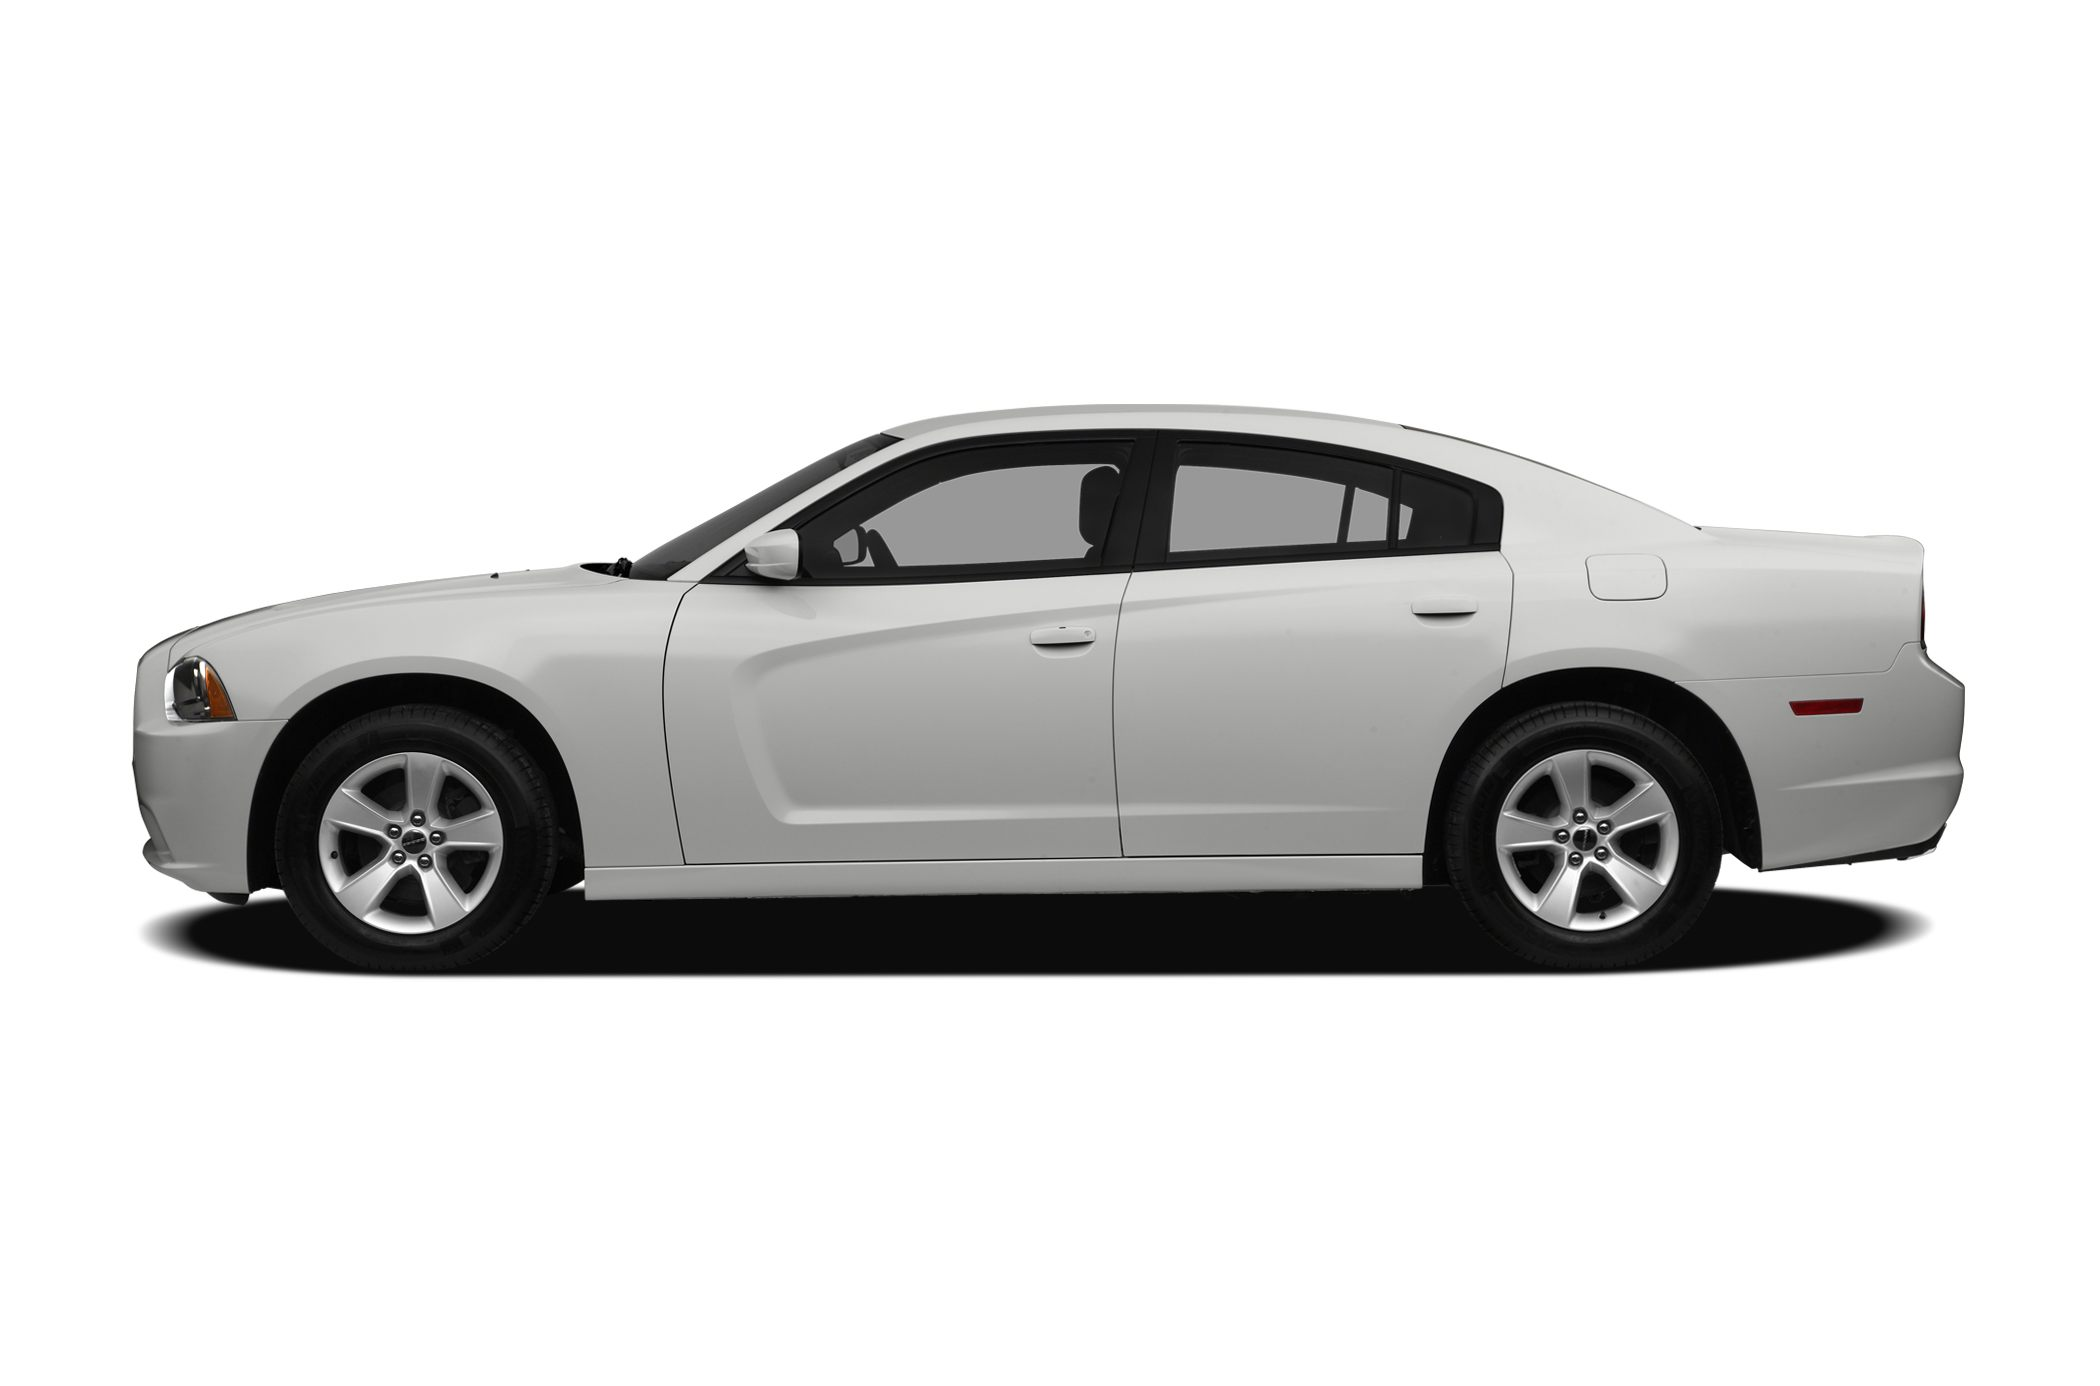 Used Cars Sumter Sc Lovely Used 2012 Dodge Charger Se Sedan In Sumter Sc Near